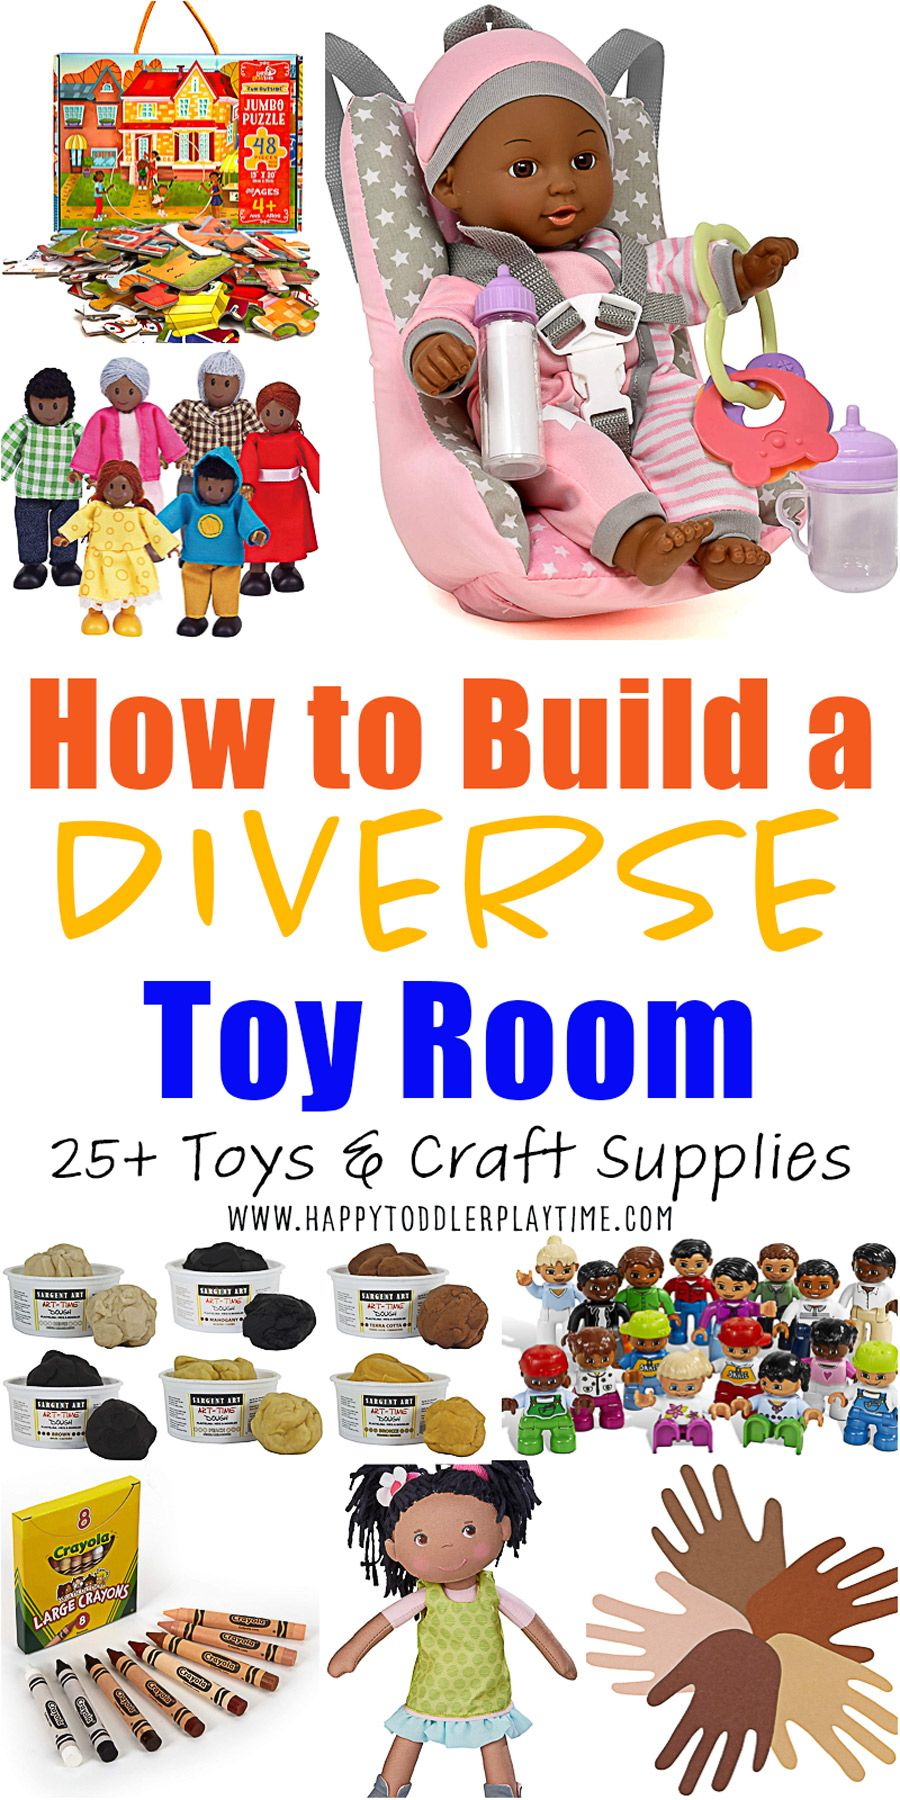 How to Build a Diverse Playroom